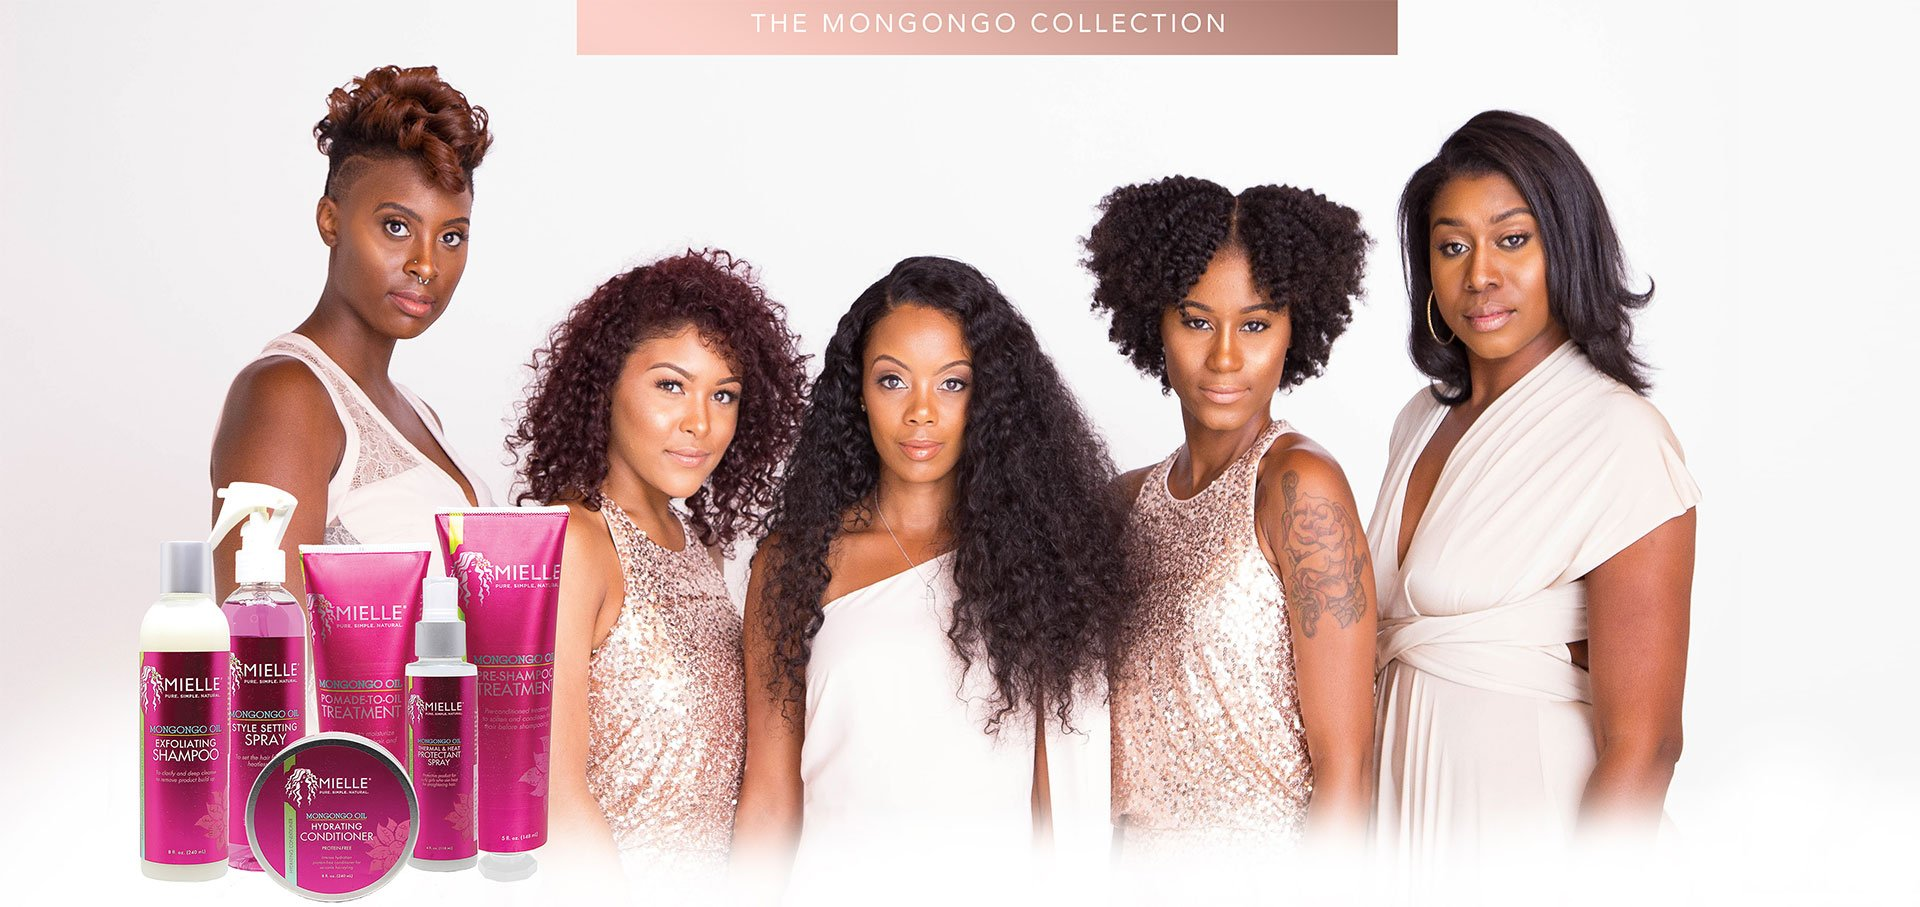 mielle organics the mongongo oil collection